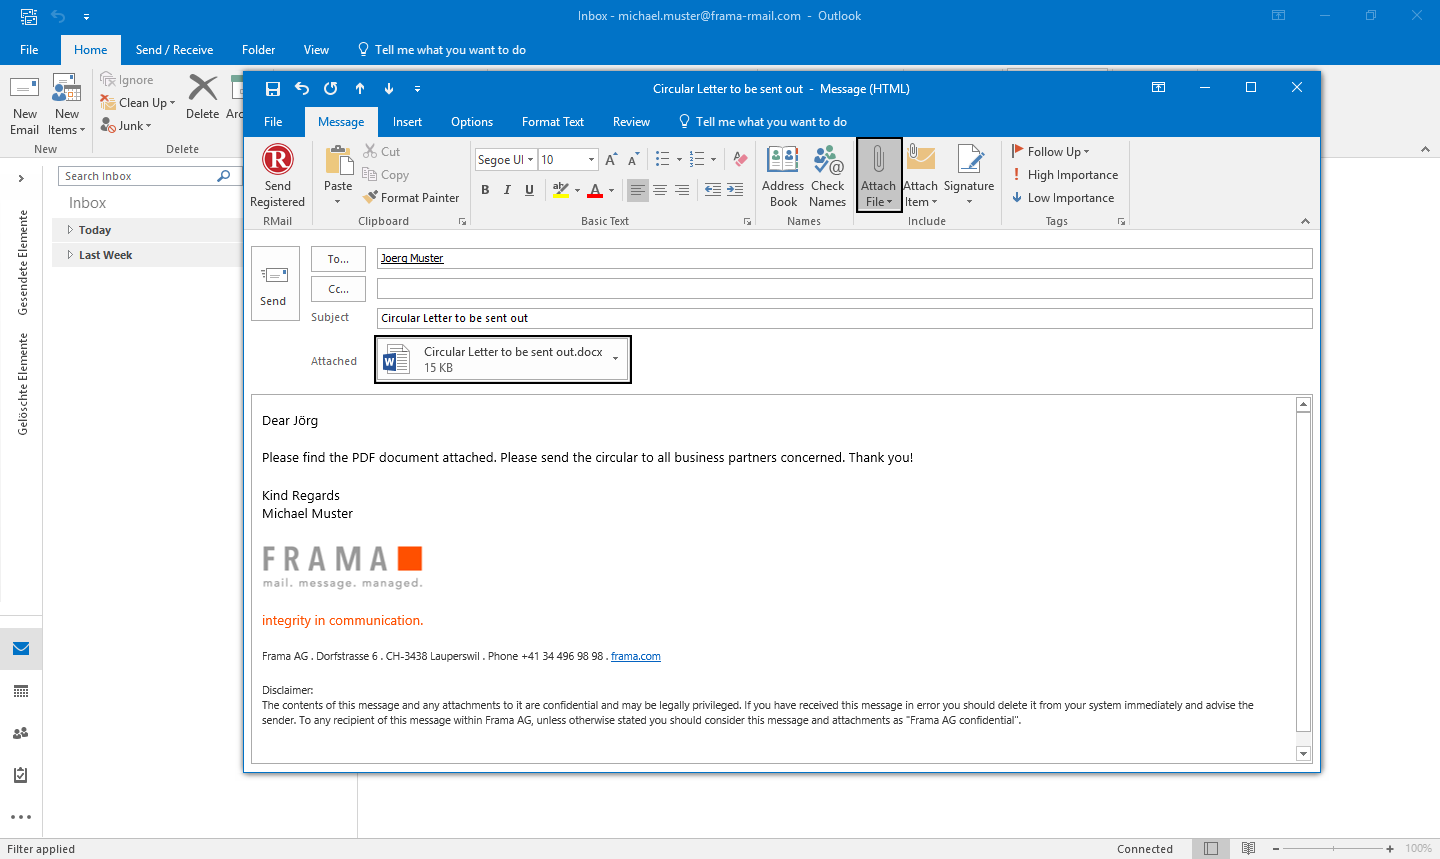 Convert attachments to PDF with Outlook - Step 1